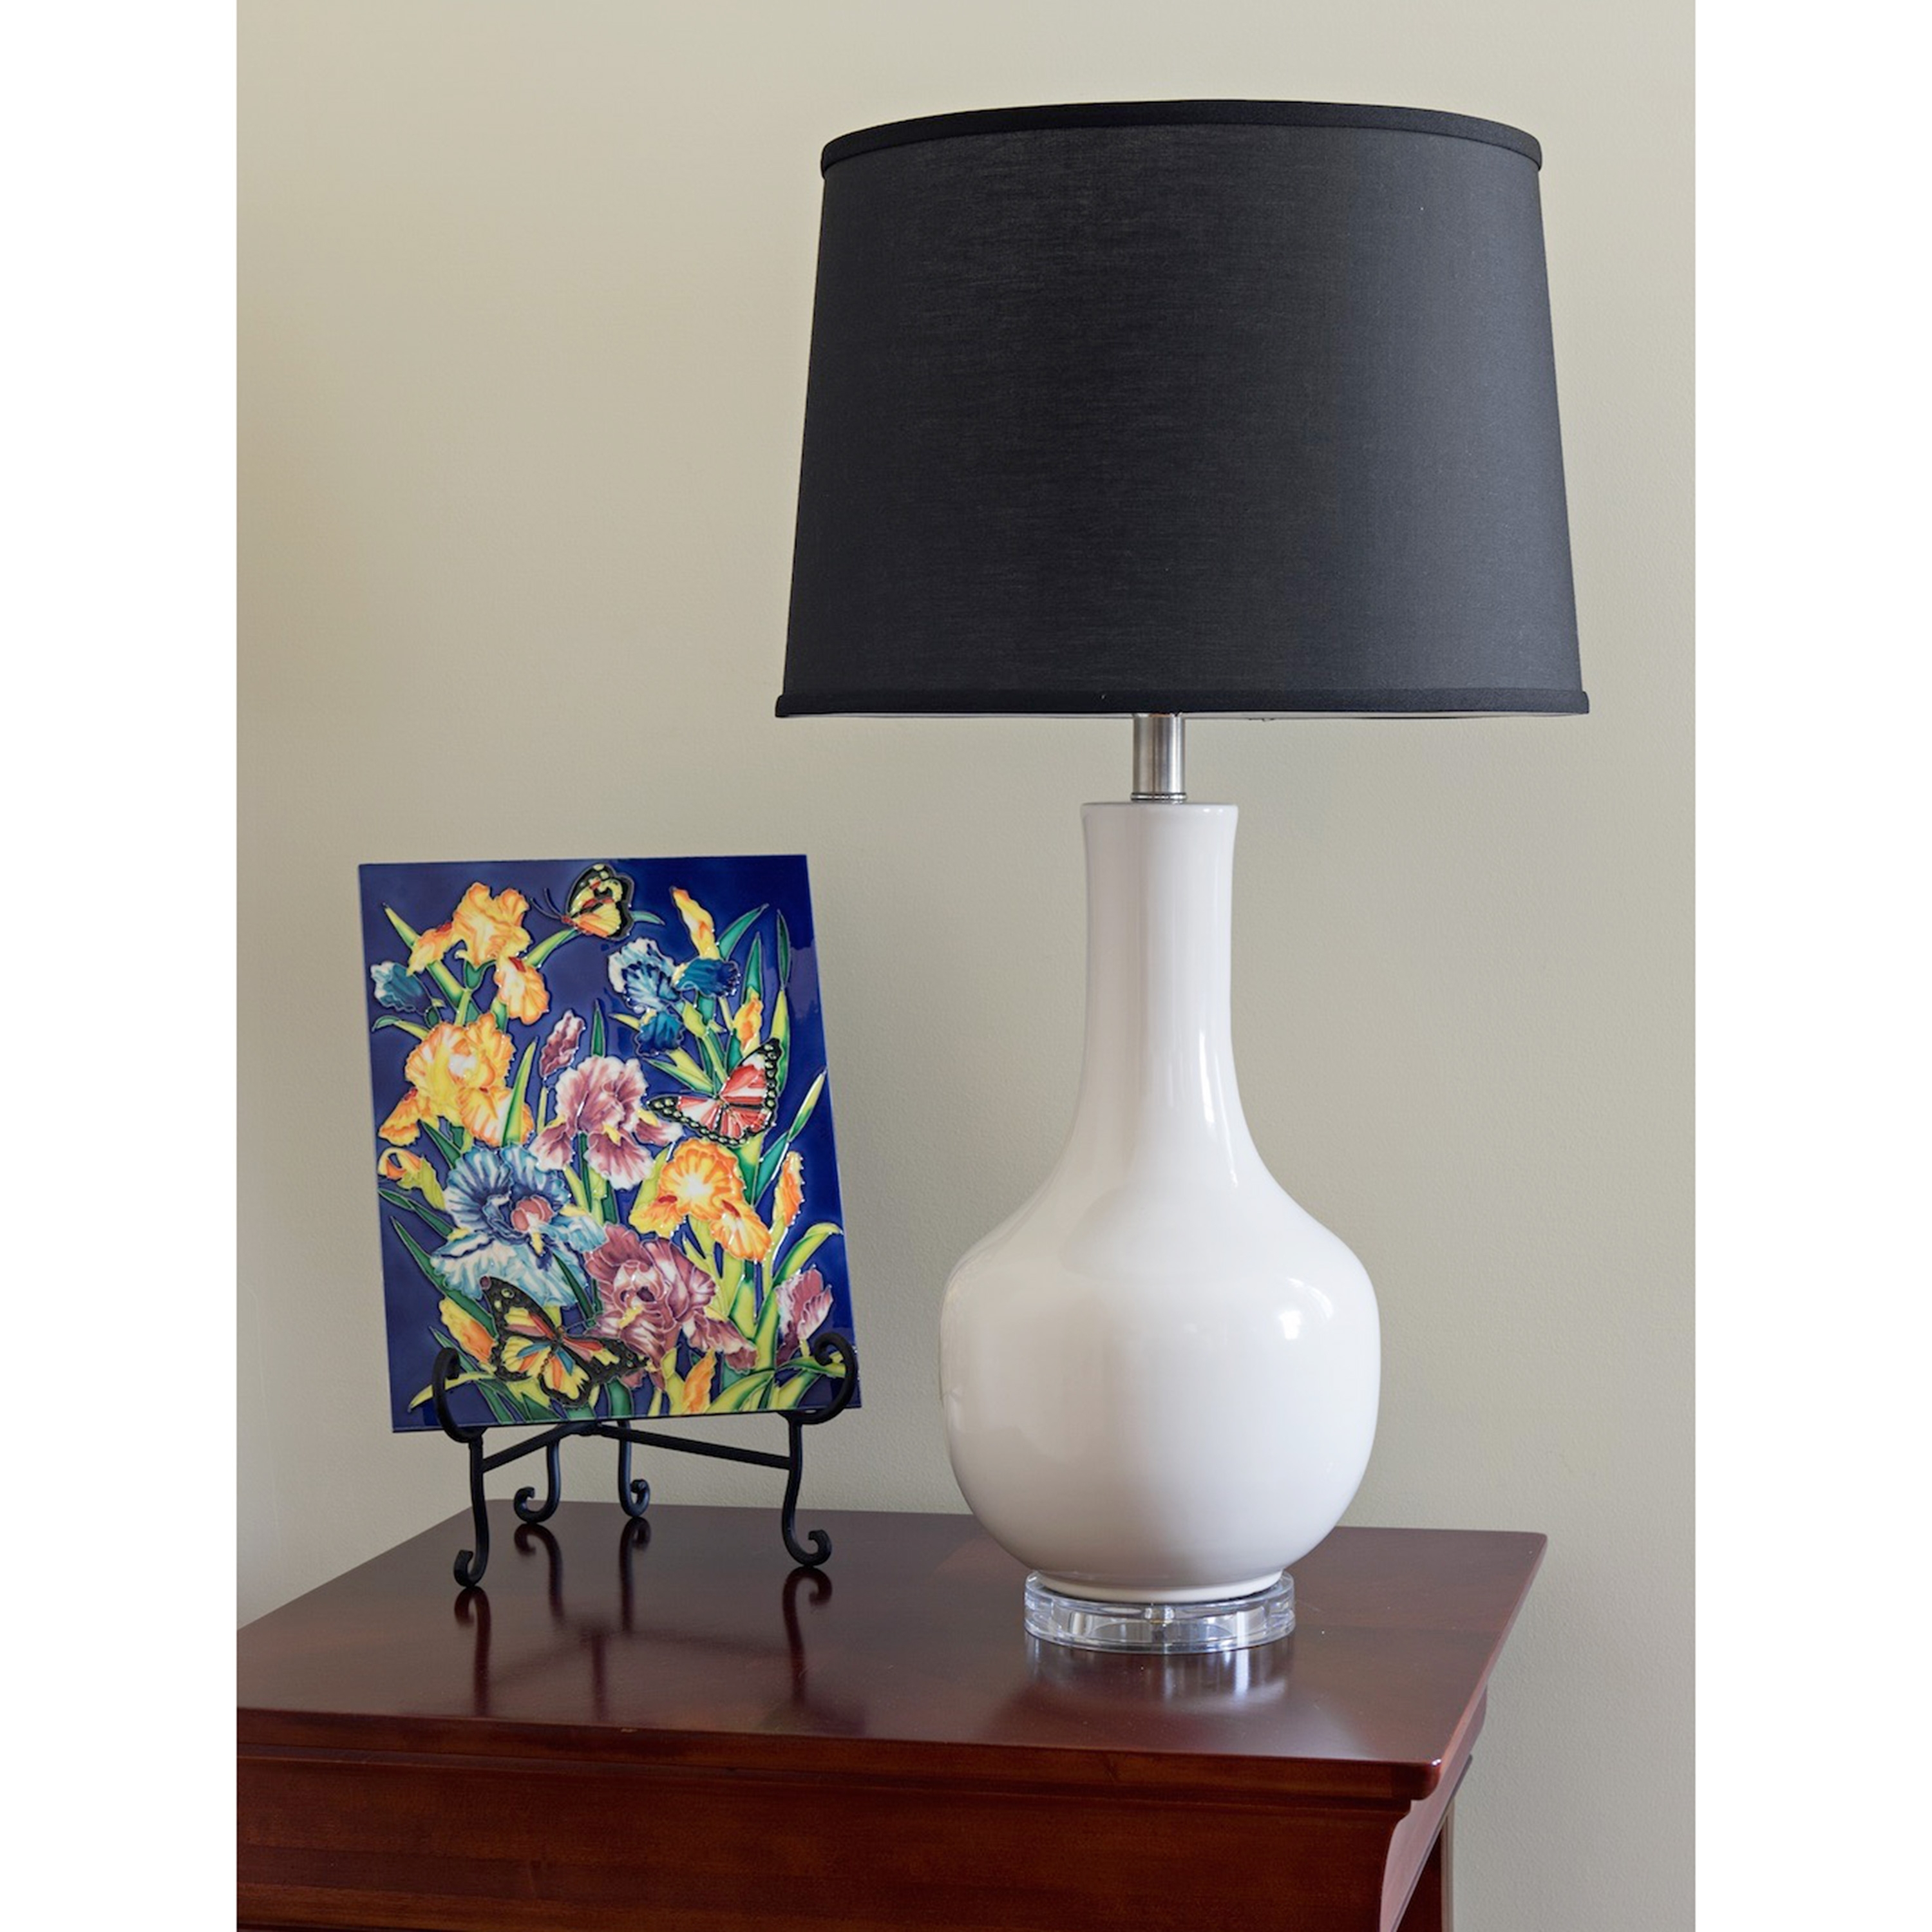 67 Most First-Rate Living Room Lamps Designer Table Purple Lamp intended for Most Current Living Room Table Lamp Shades